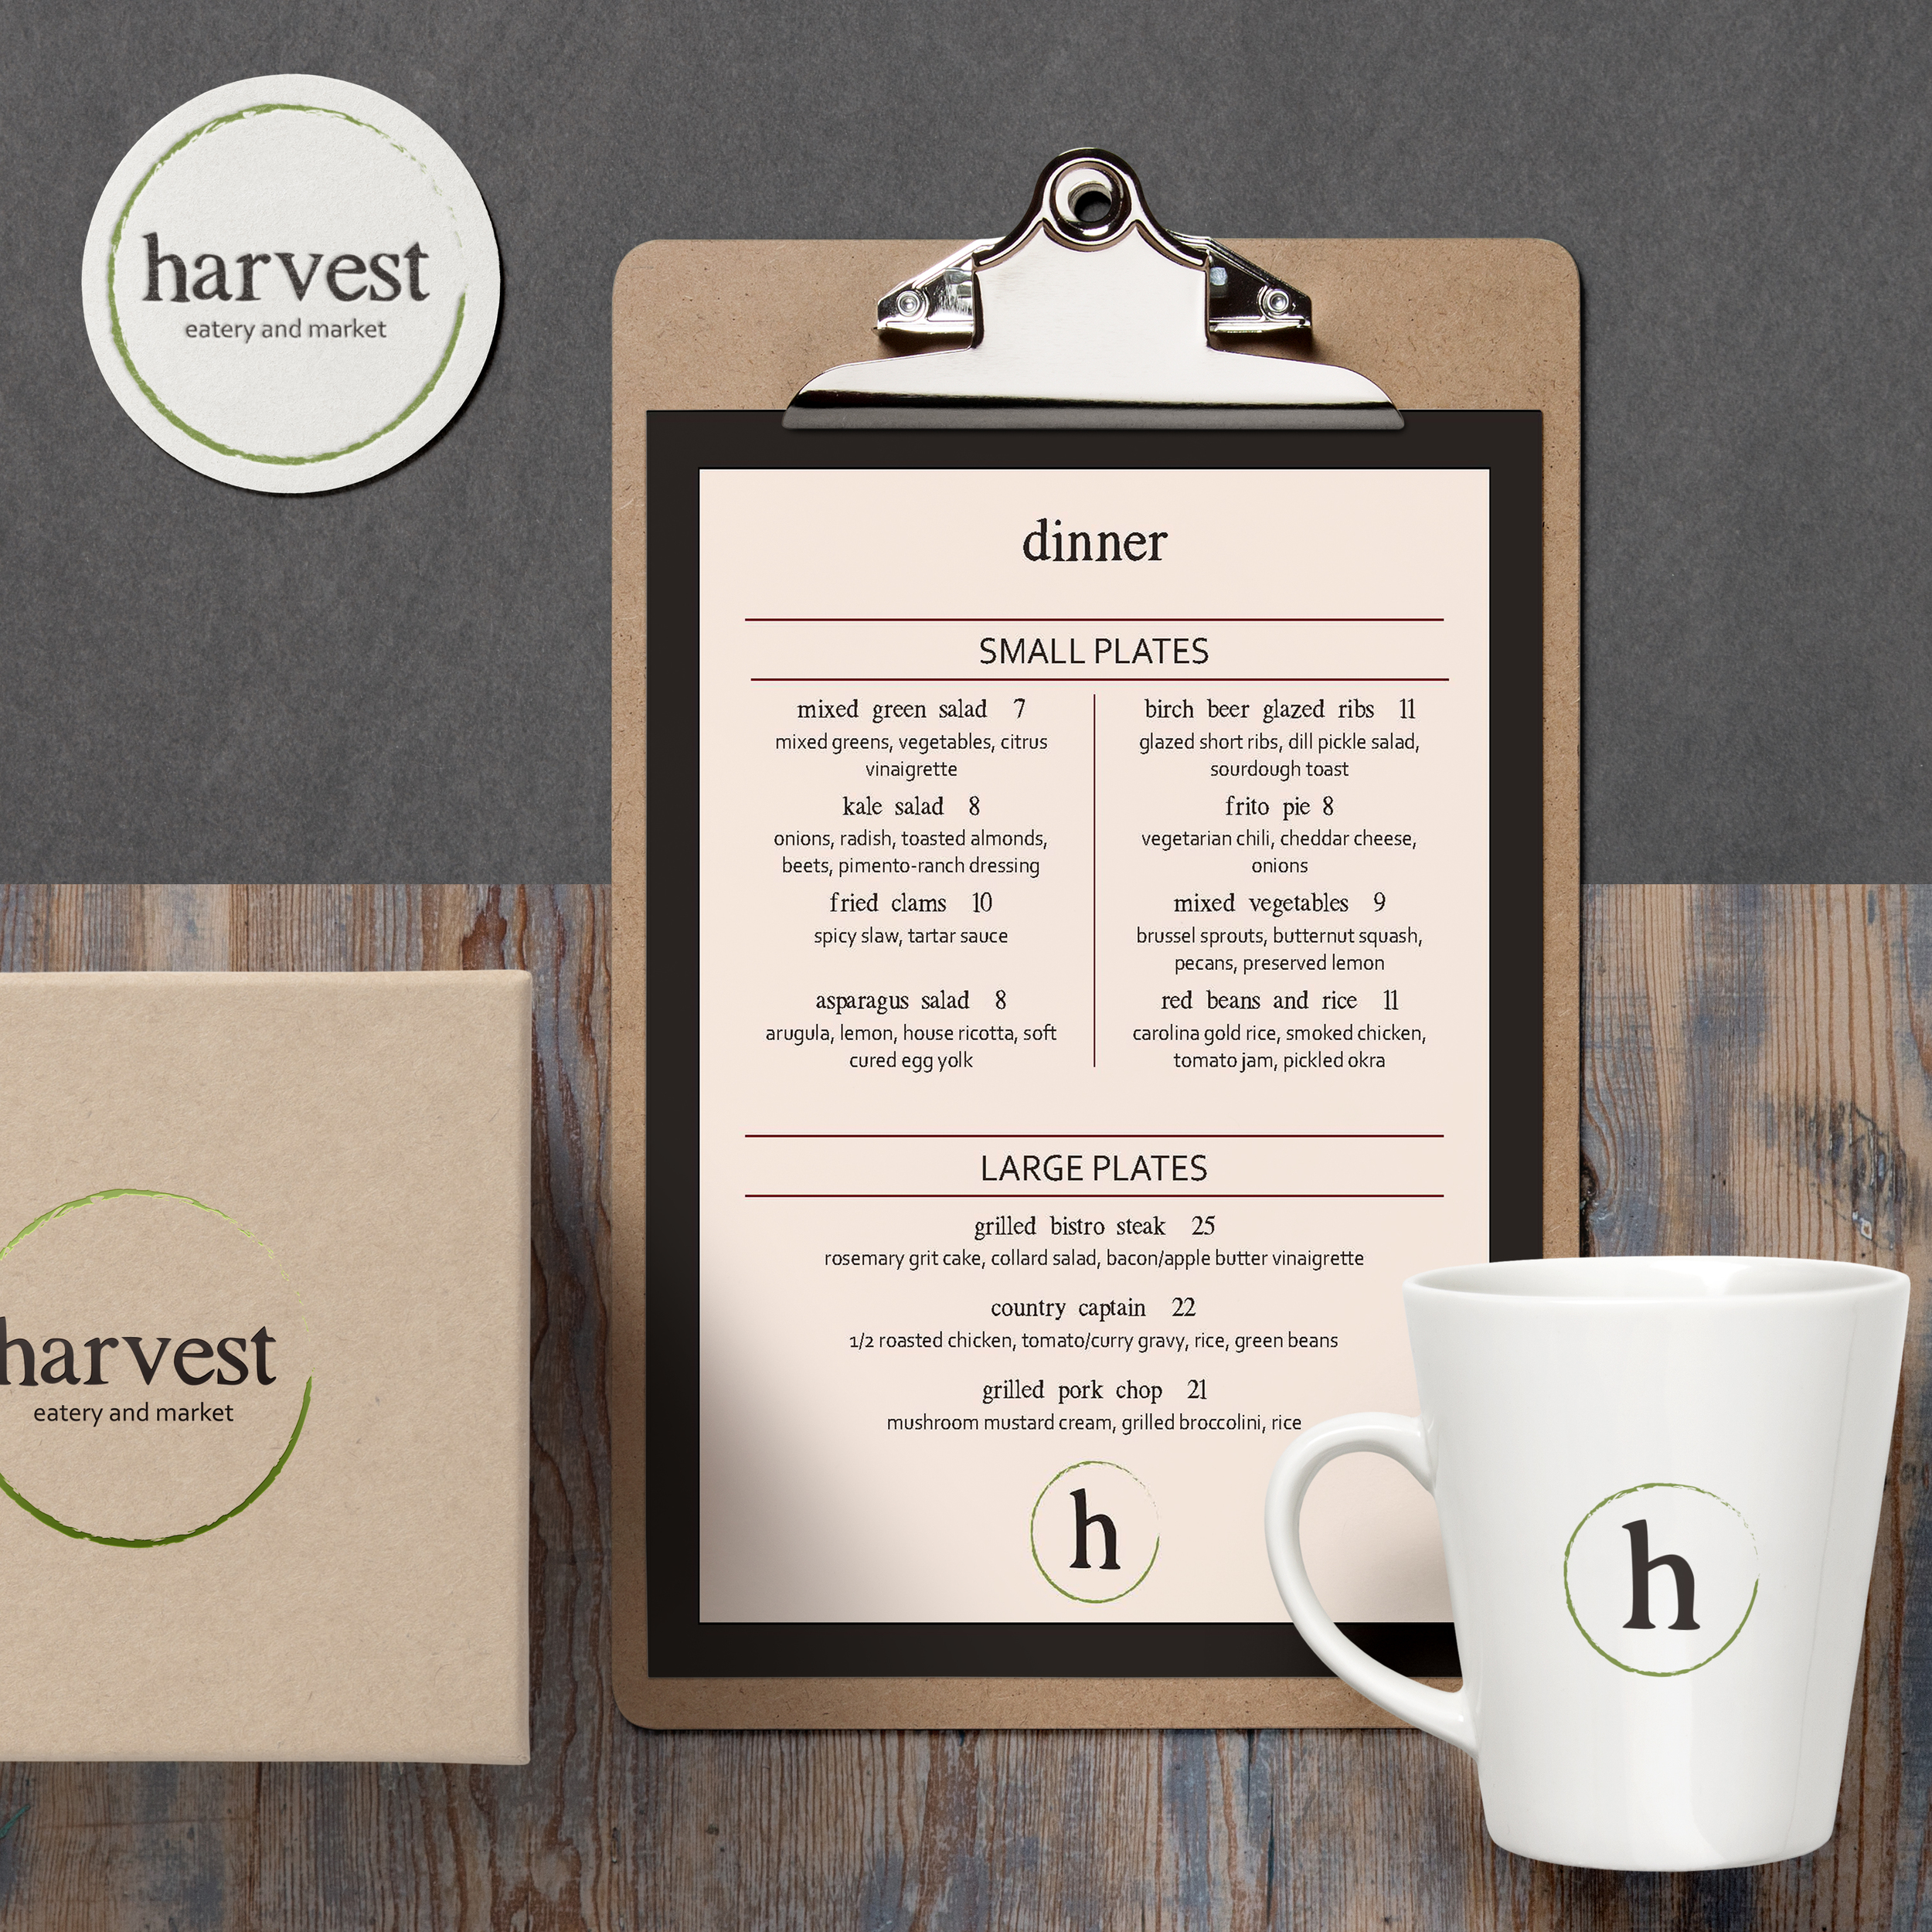 Harvest Eatery and Market | Lemon and the Sea: Brand touchpoints including menu design, take out boxes, coasters, and coffee mugs.